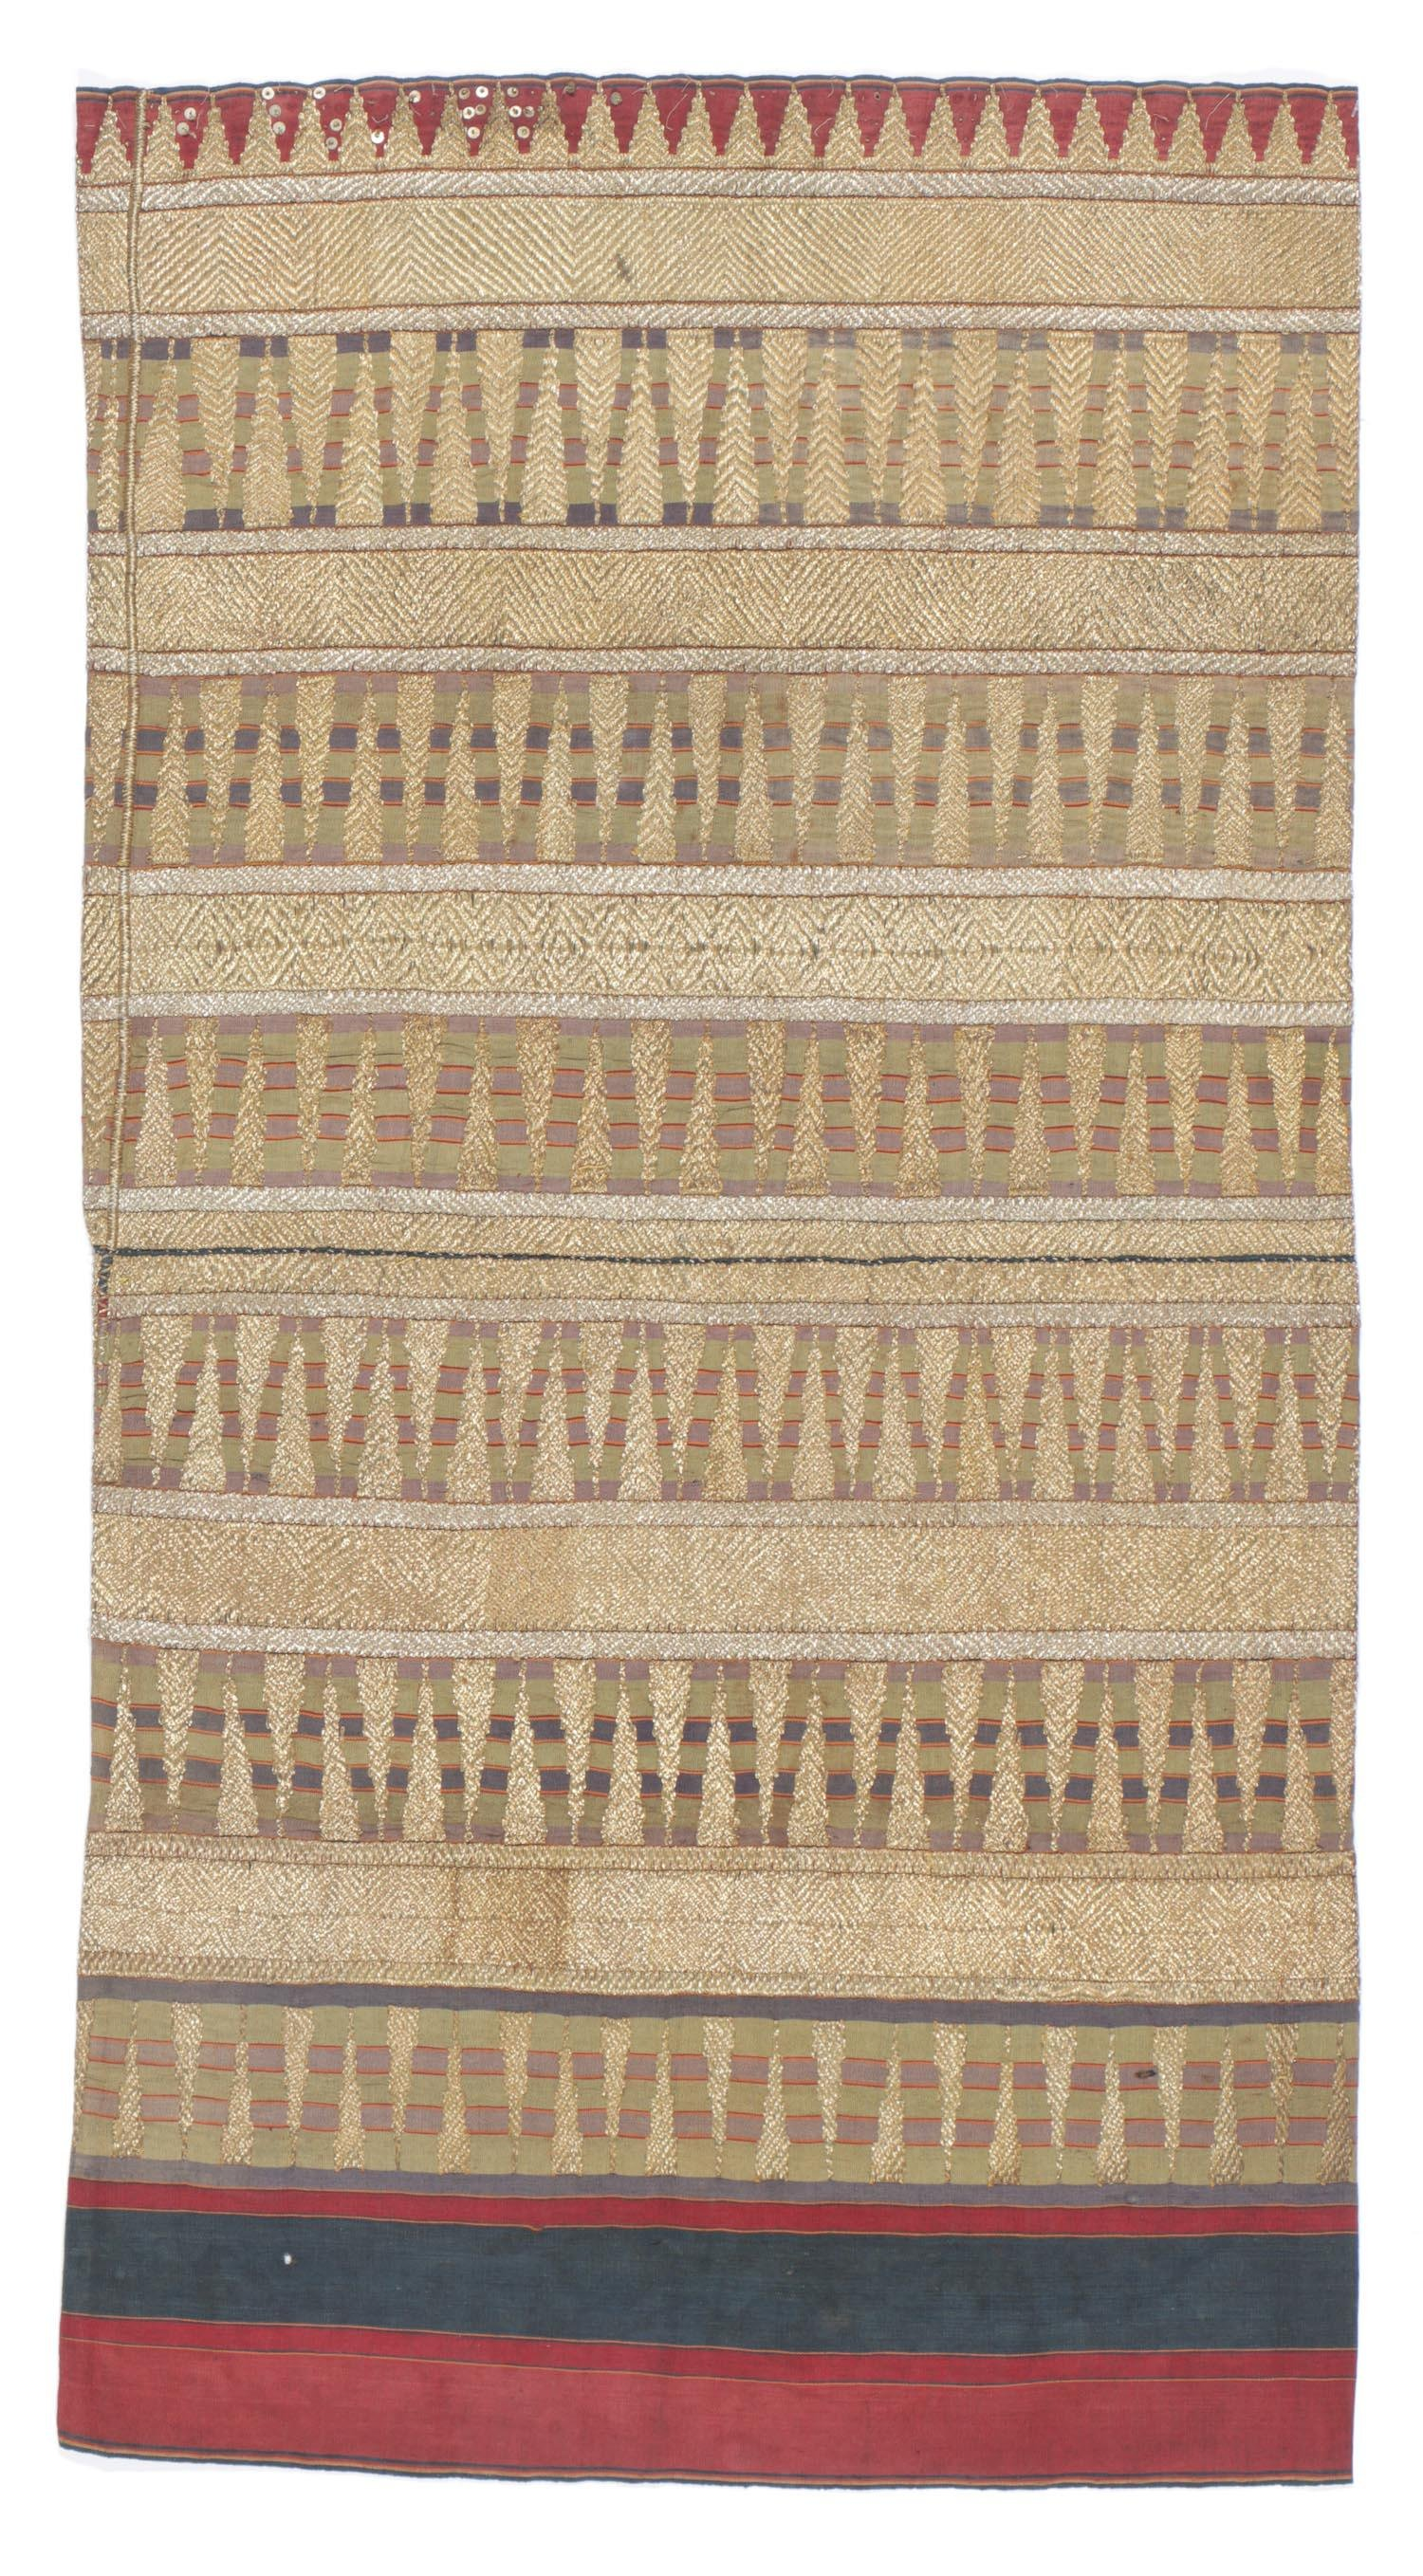 Antique Ceremonial Tapis with Gold Thread